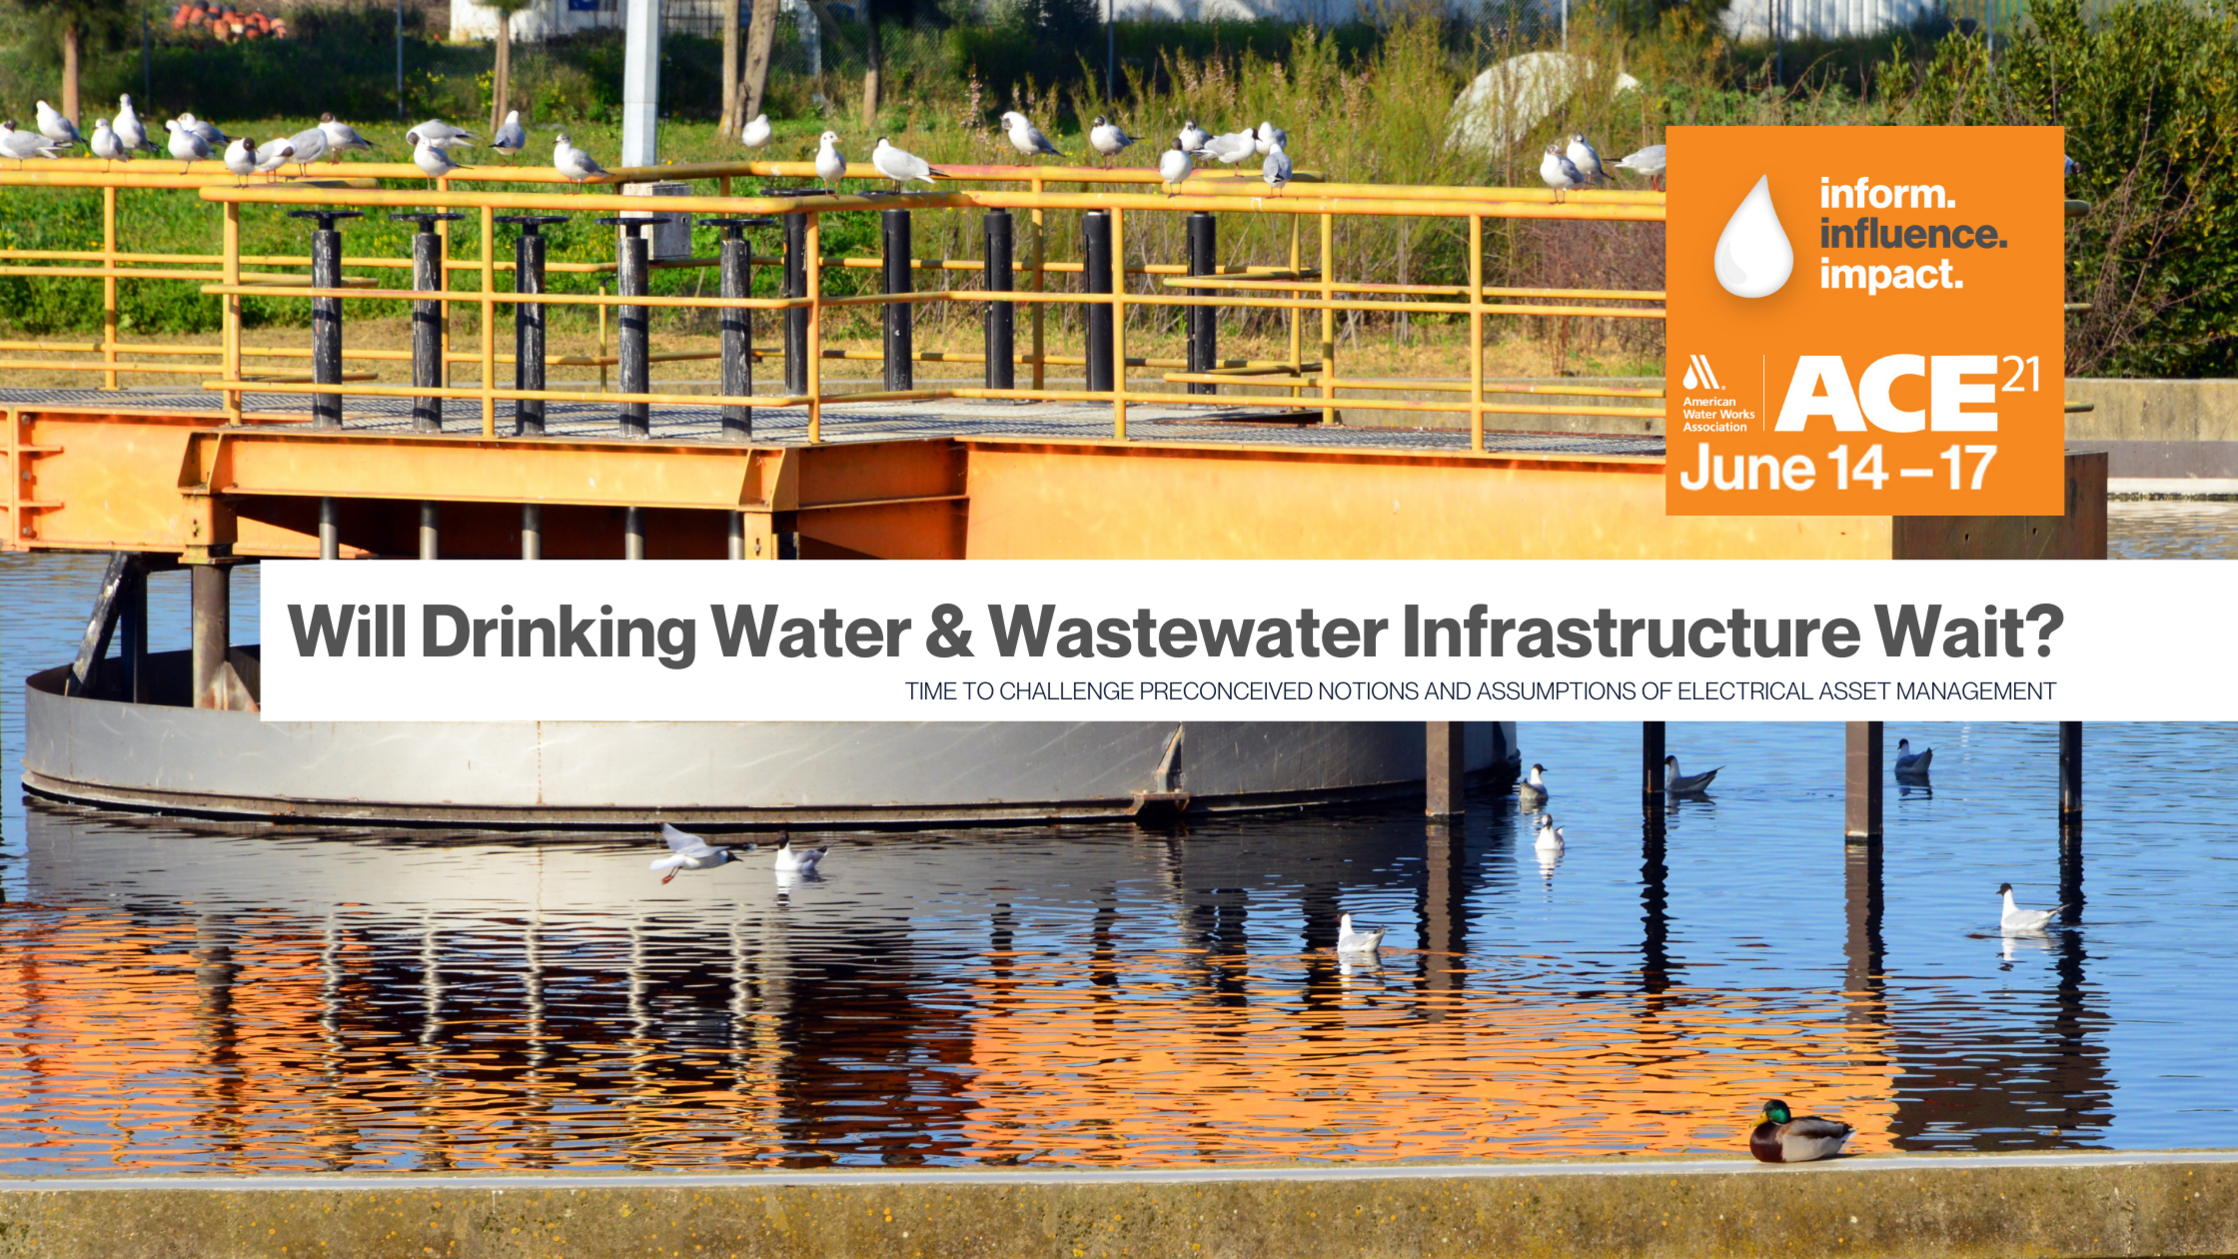 Will Drinking Water & Waste Water Infrastructure Stand the Wait?